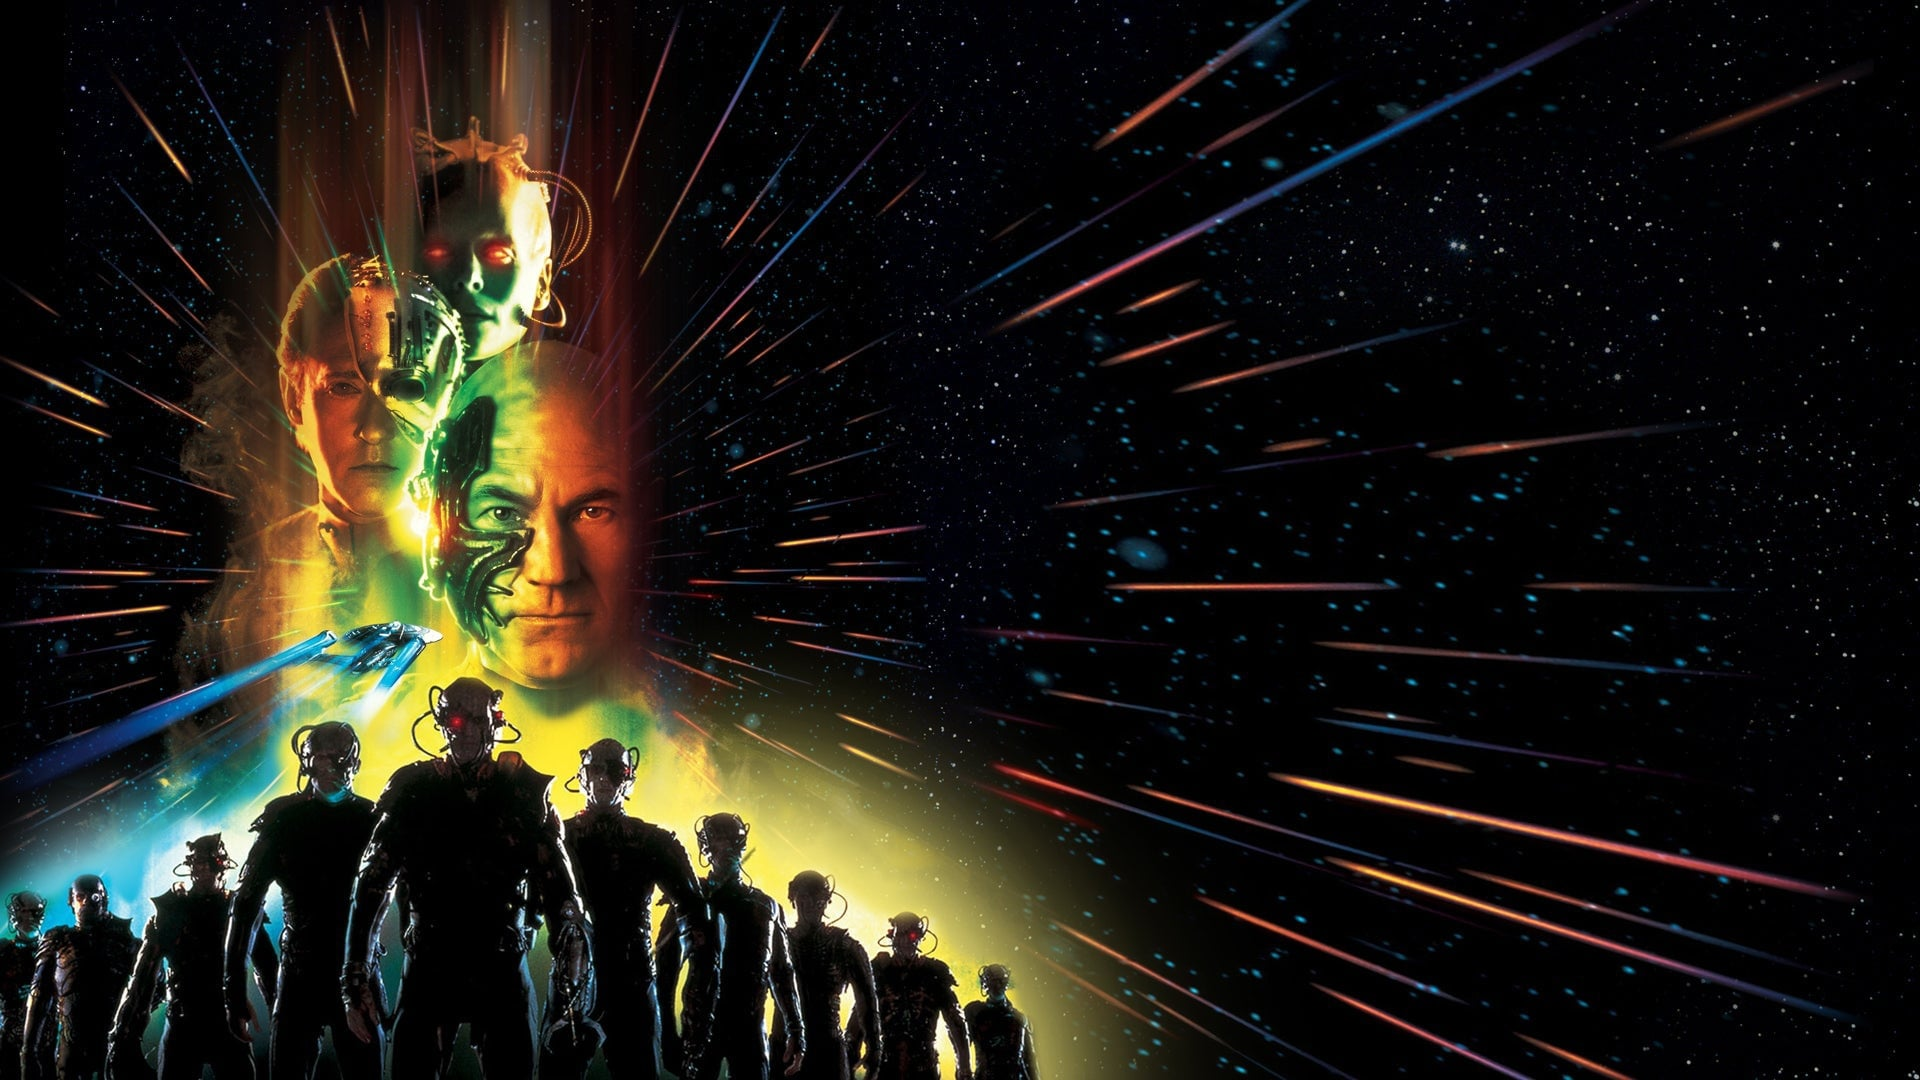 watch star trek first contact movie online for free